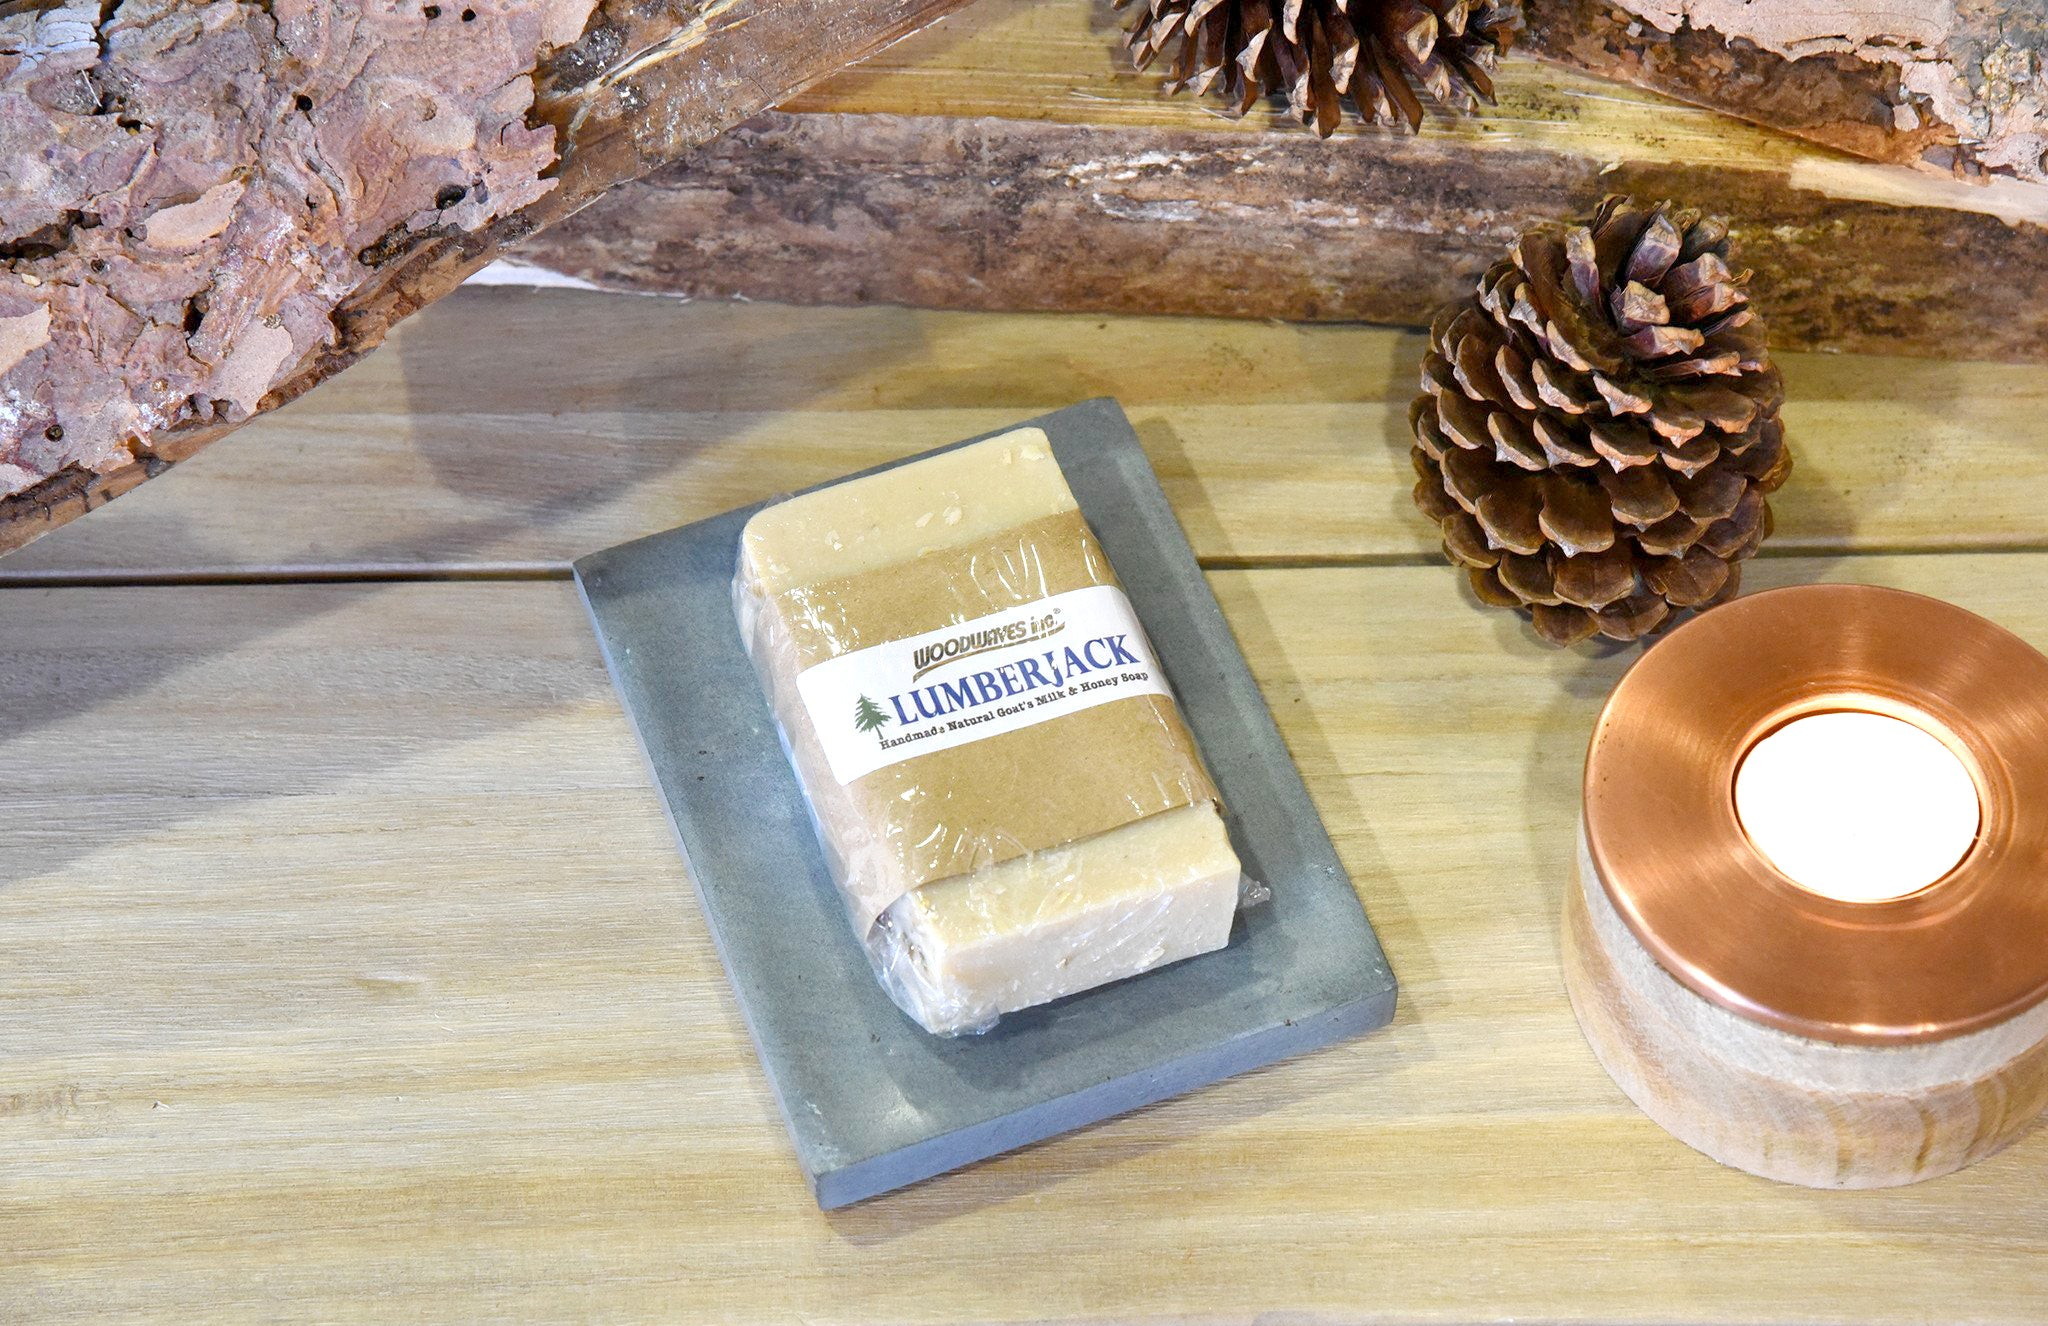 Men's Handmade Goat's Milk Bar Soap Gift Set - Lumberjack